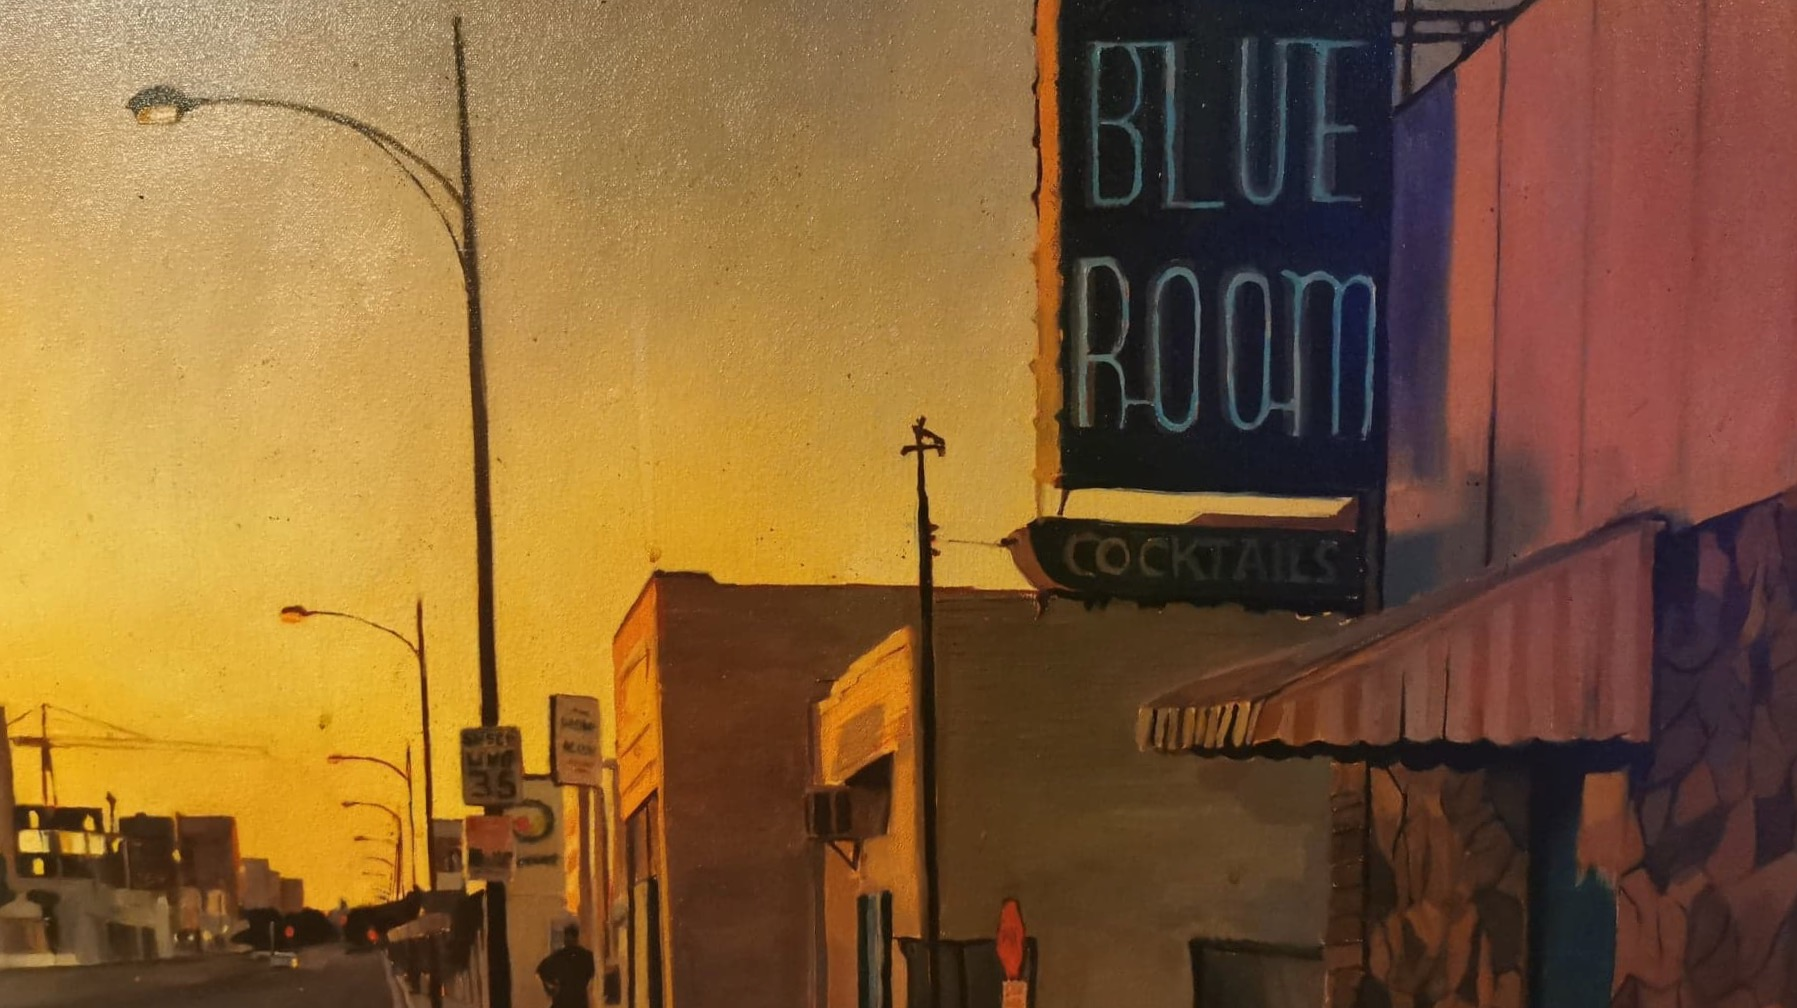 Painting of The Blue Room, Burbank.